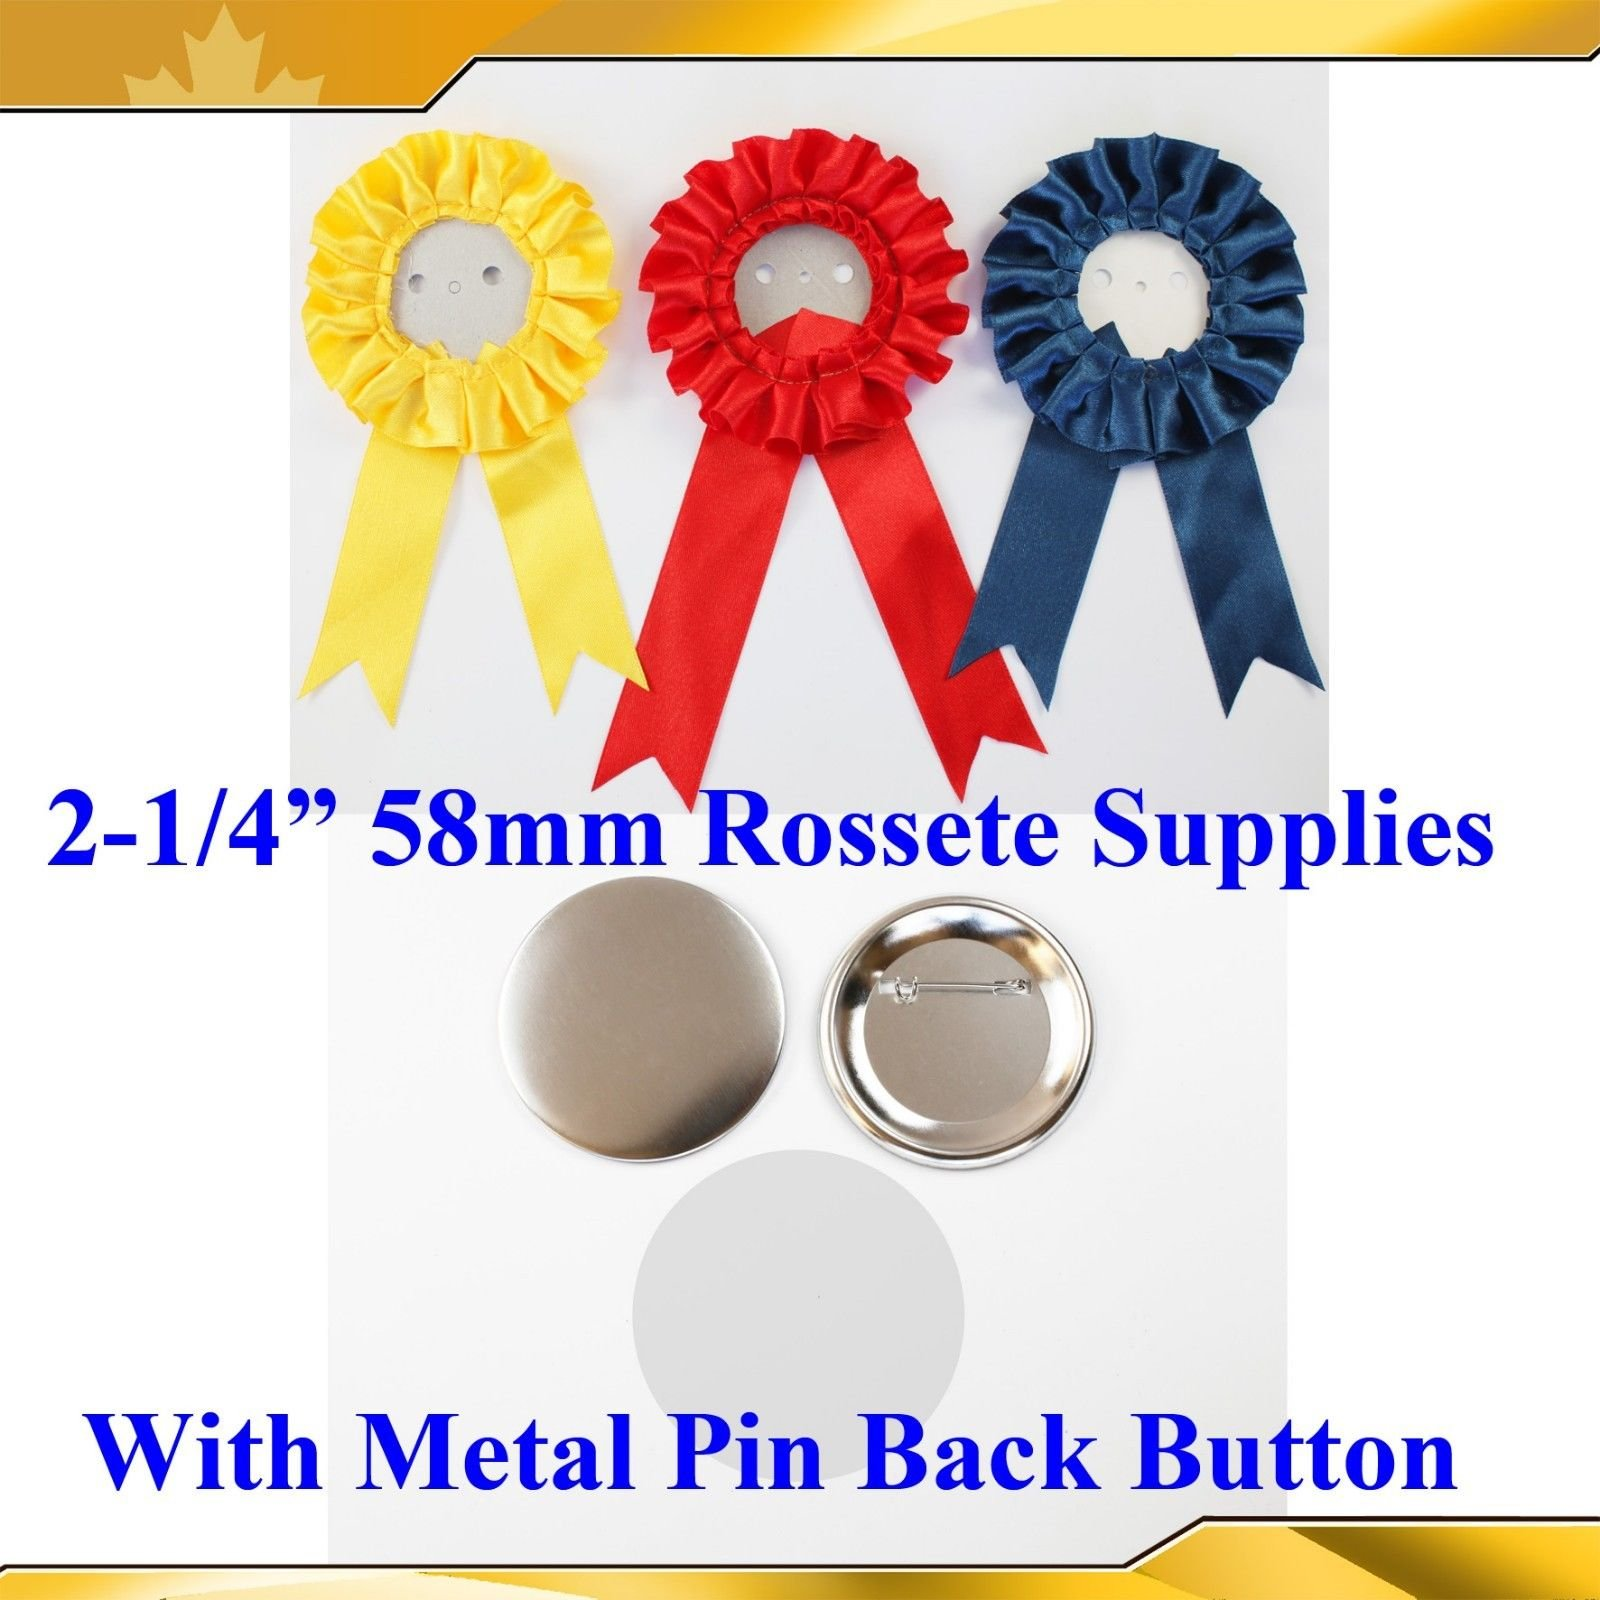 100sets 2-1/4'' 58mm Complete Rosette with Metal Pin Badge Button Supplies Maker